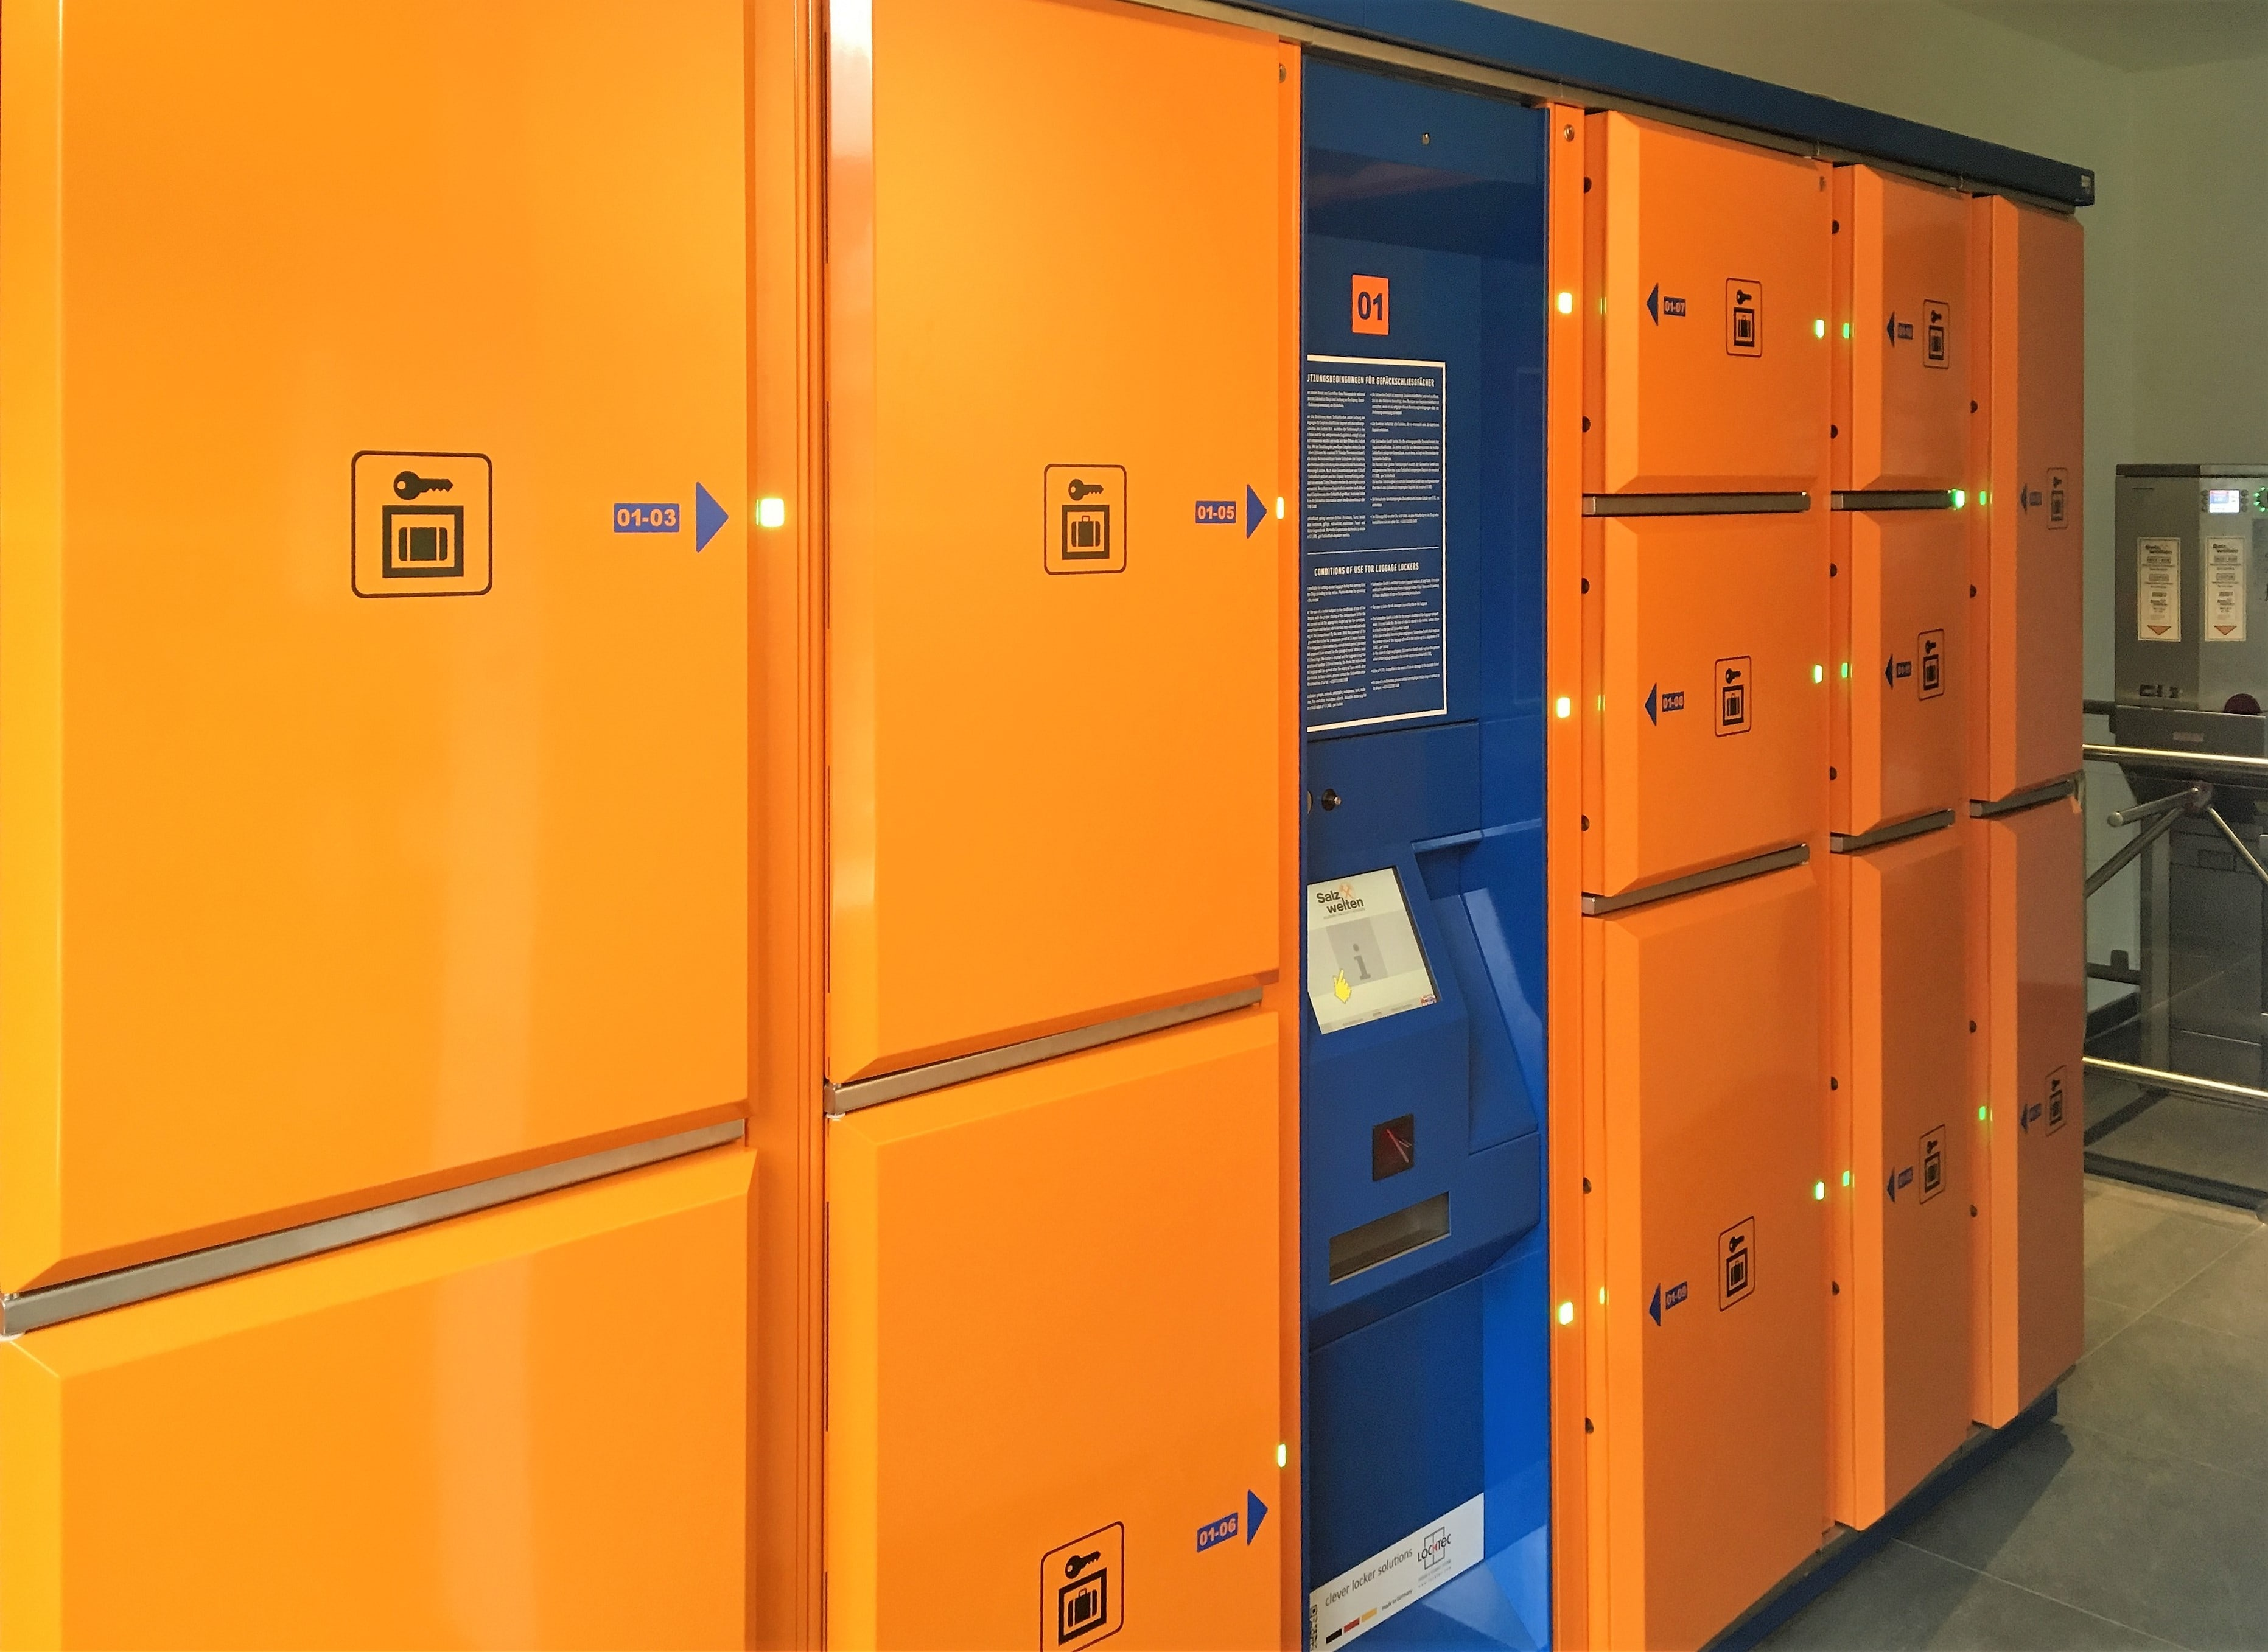 lockers for tourism - Locksafe at Salzwelten